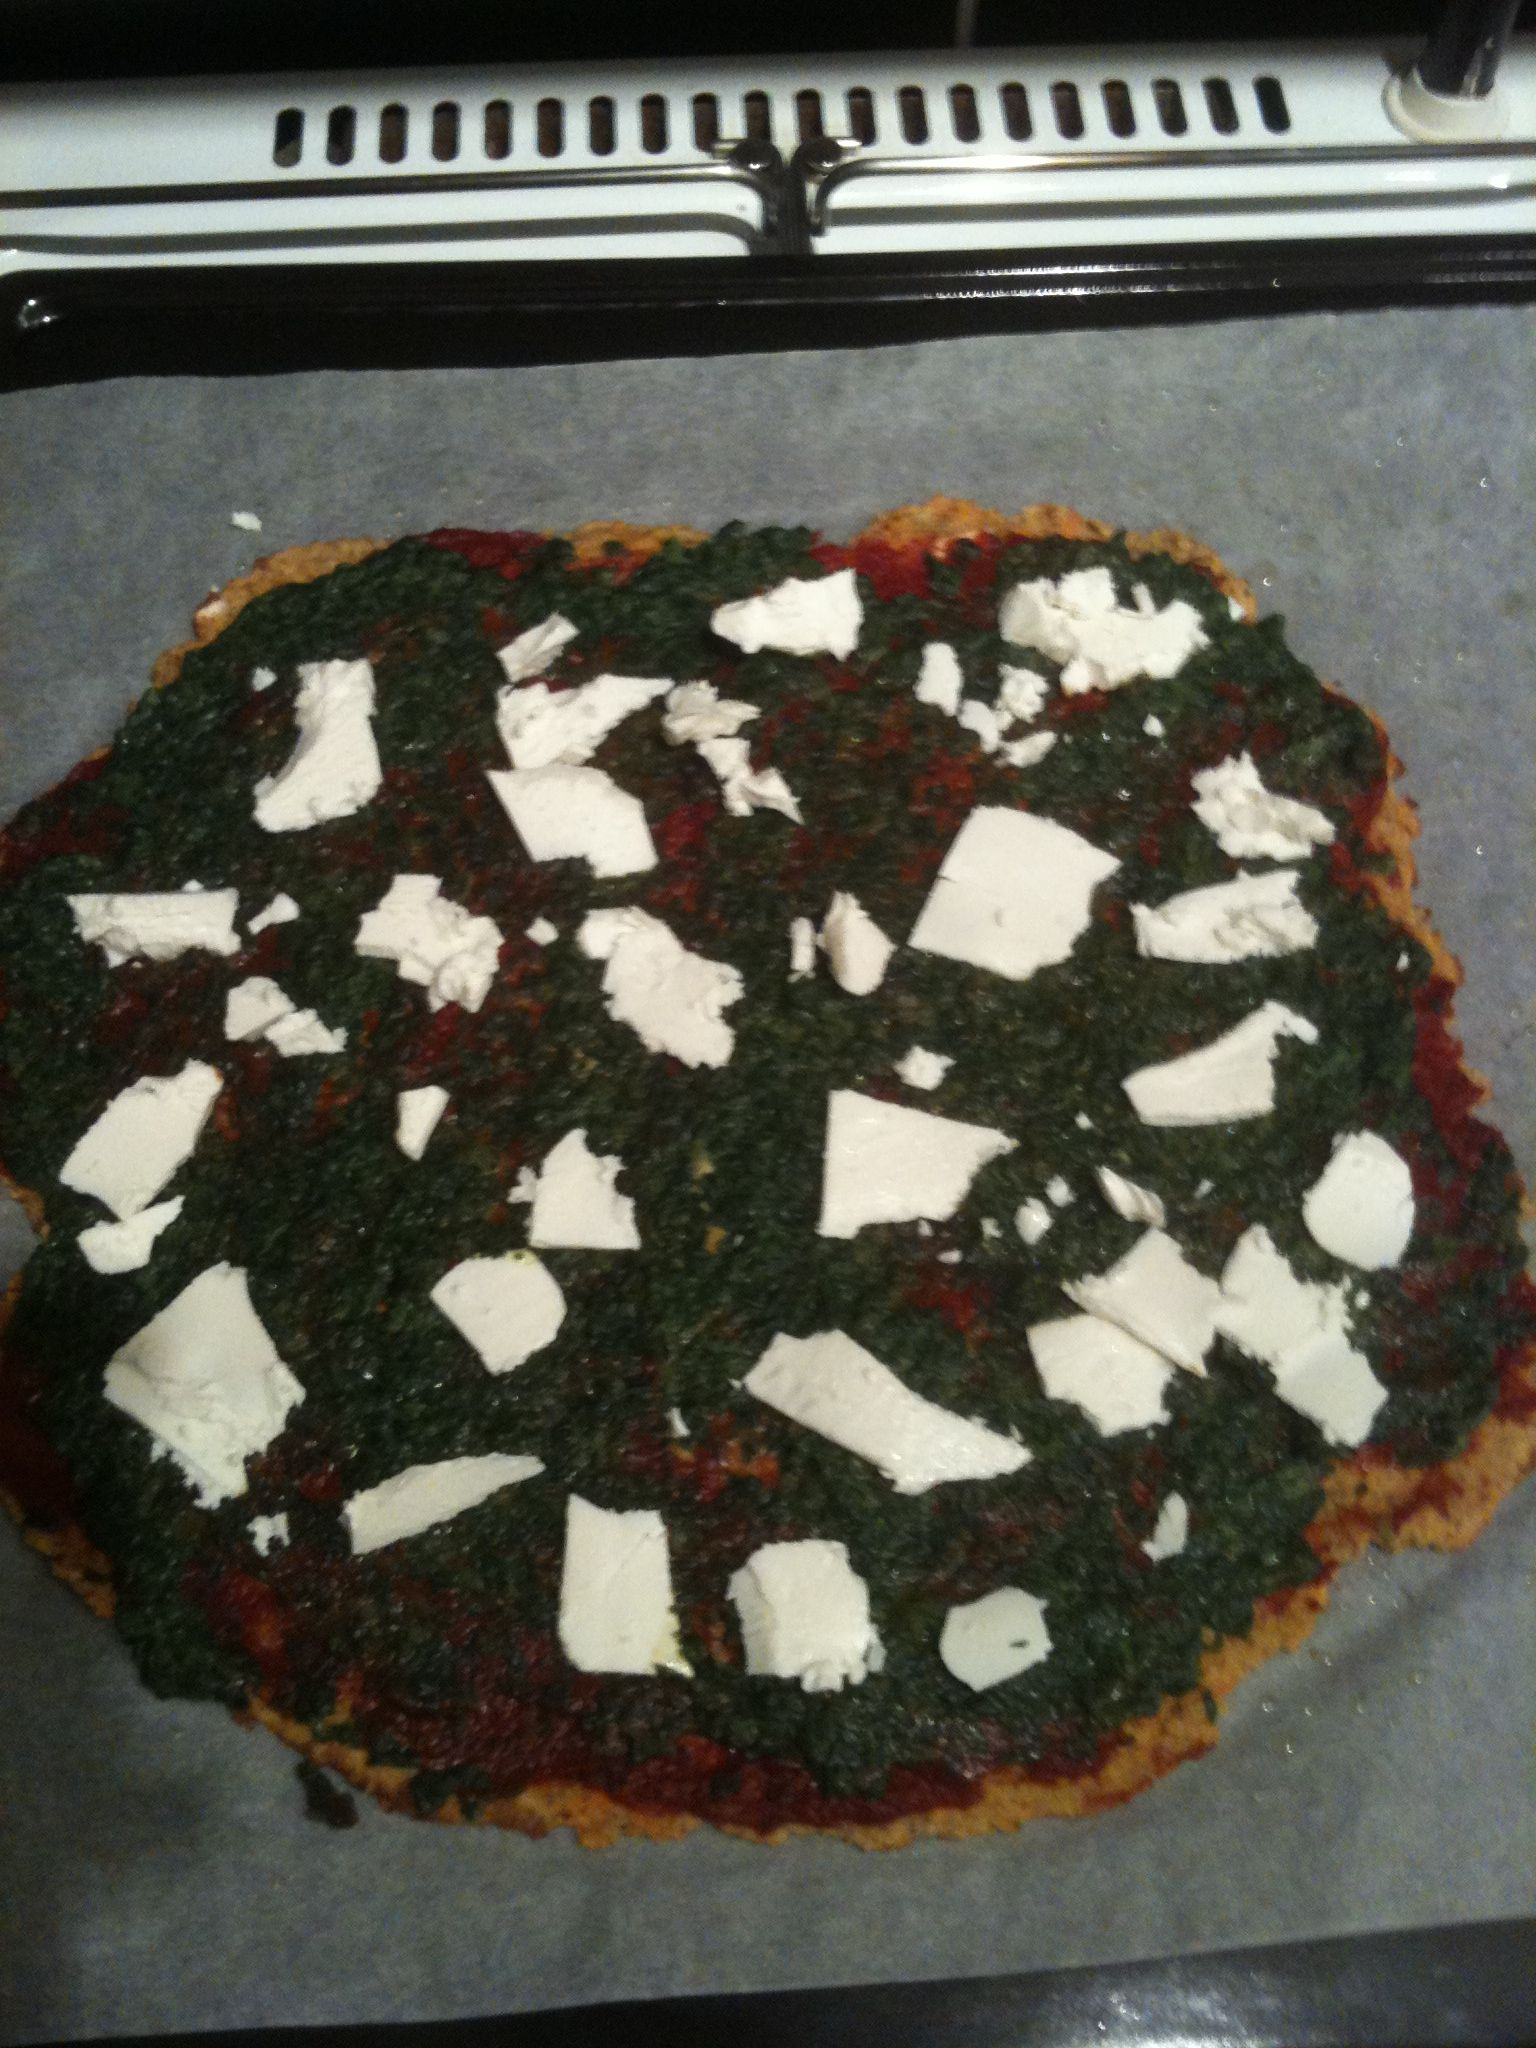 Wonderfull paleo pizza :)